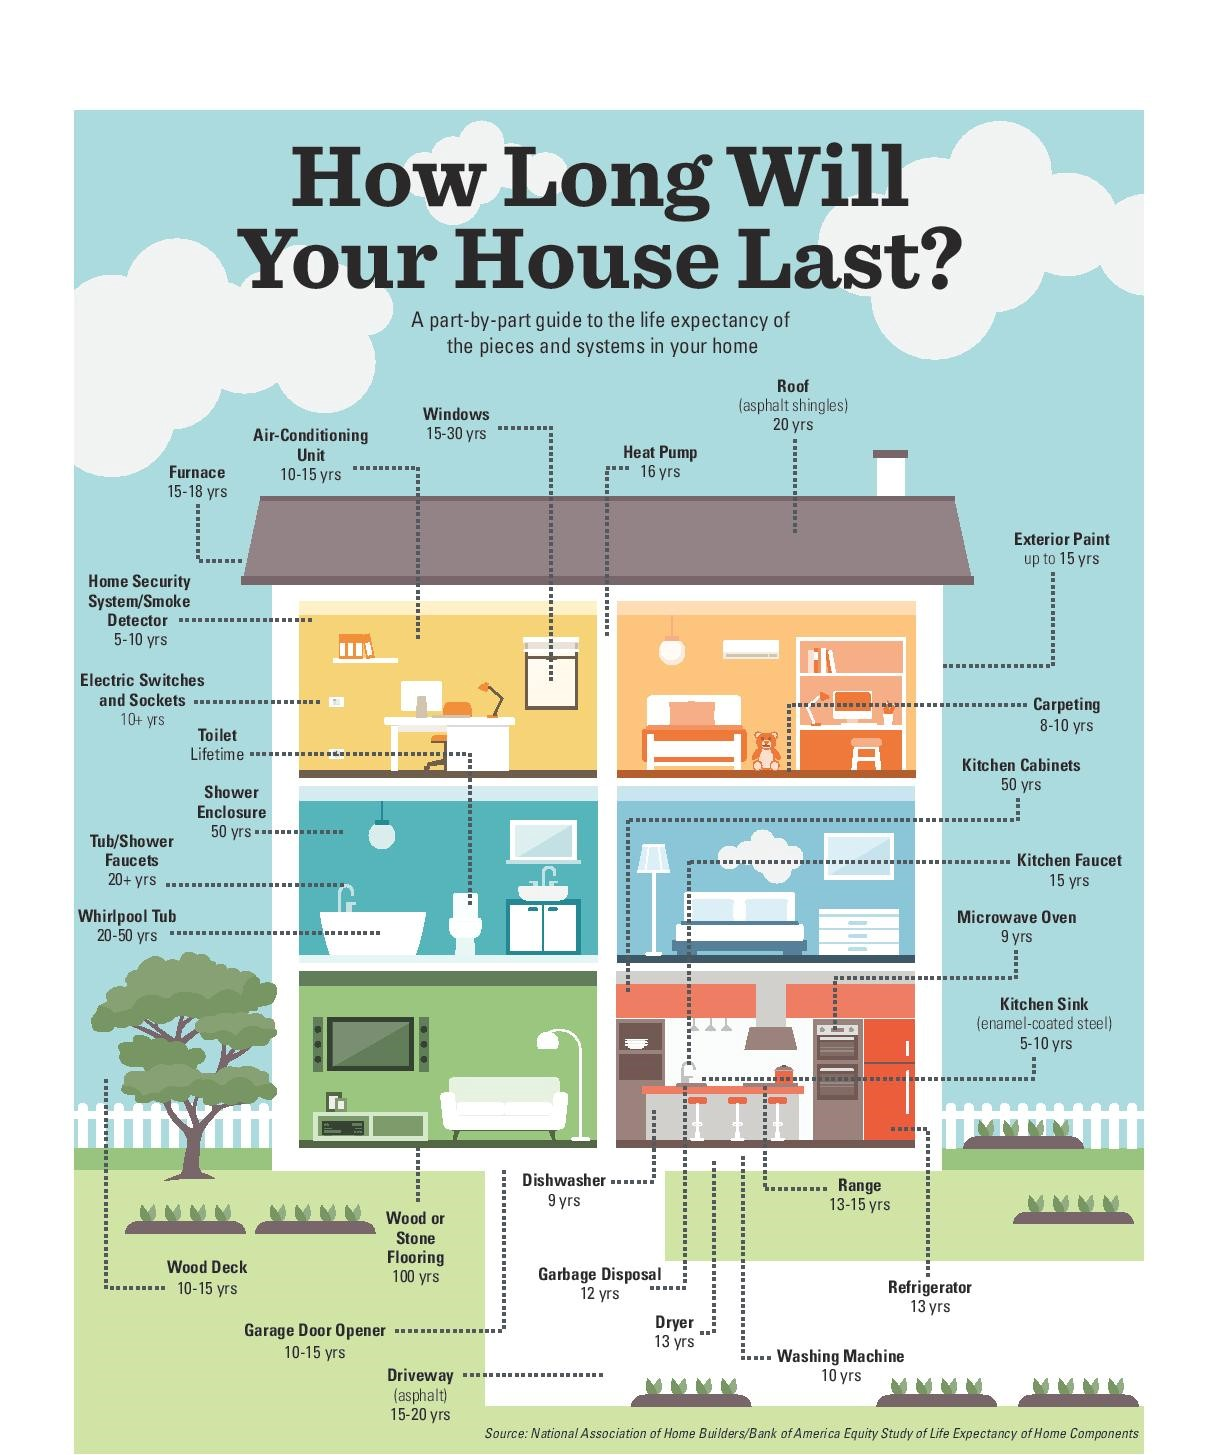 How Long Will Your House Last